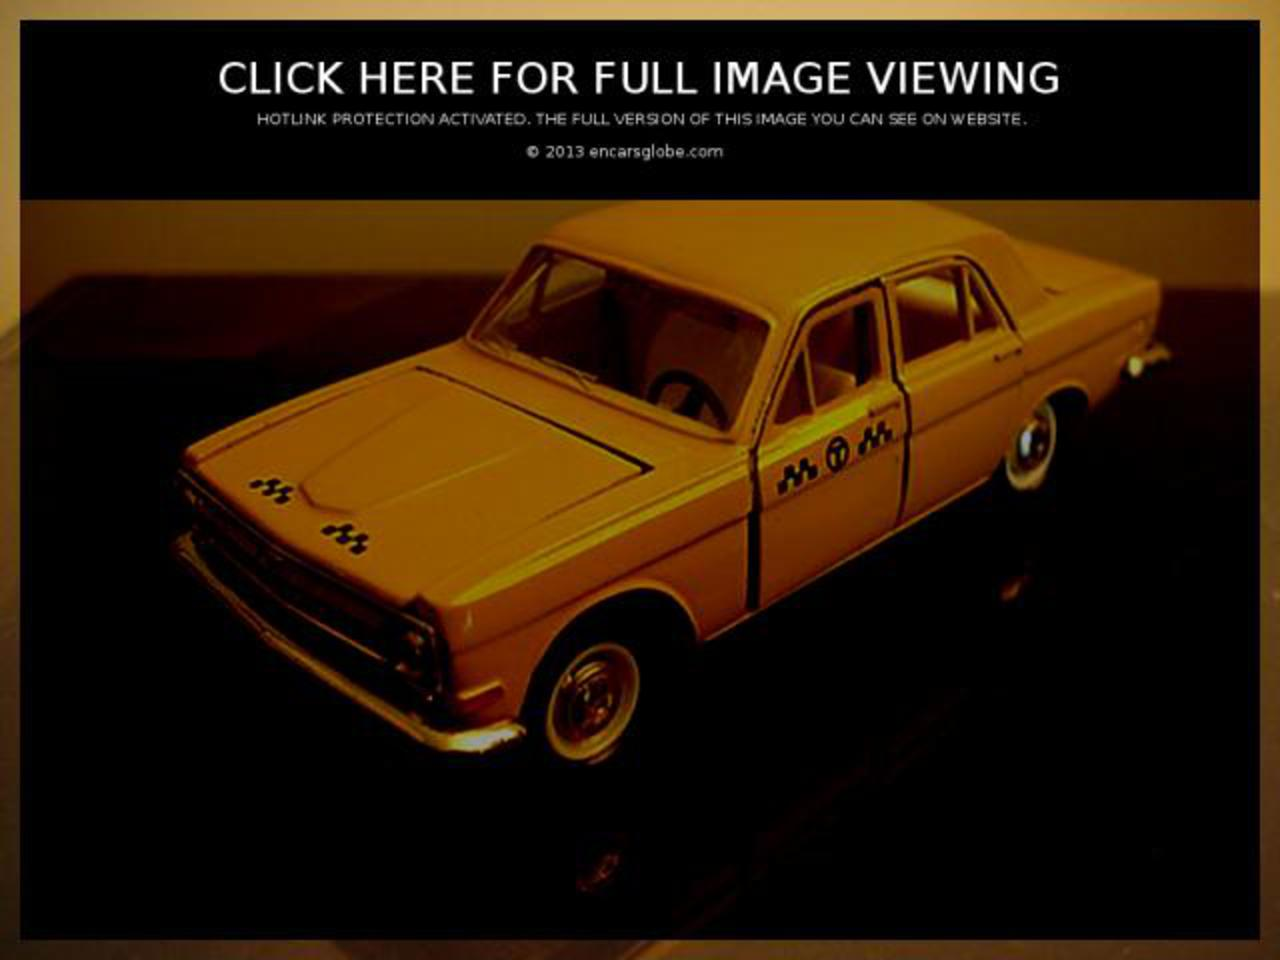 Gallery of all models of GAZ: GAZ 330811, GAZ M1, GAZ Pobeda, GAZ ...